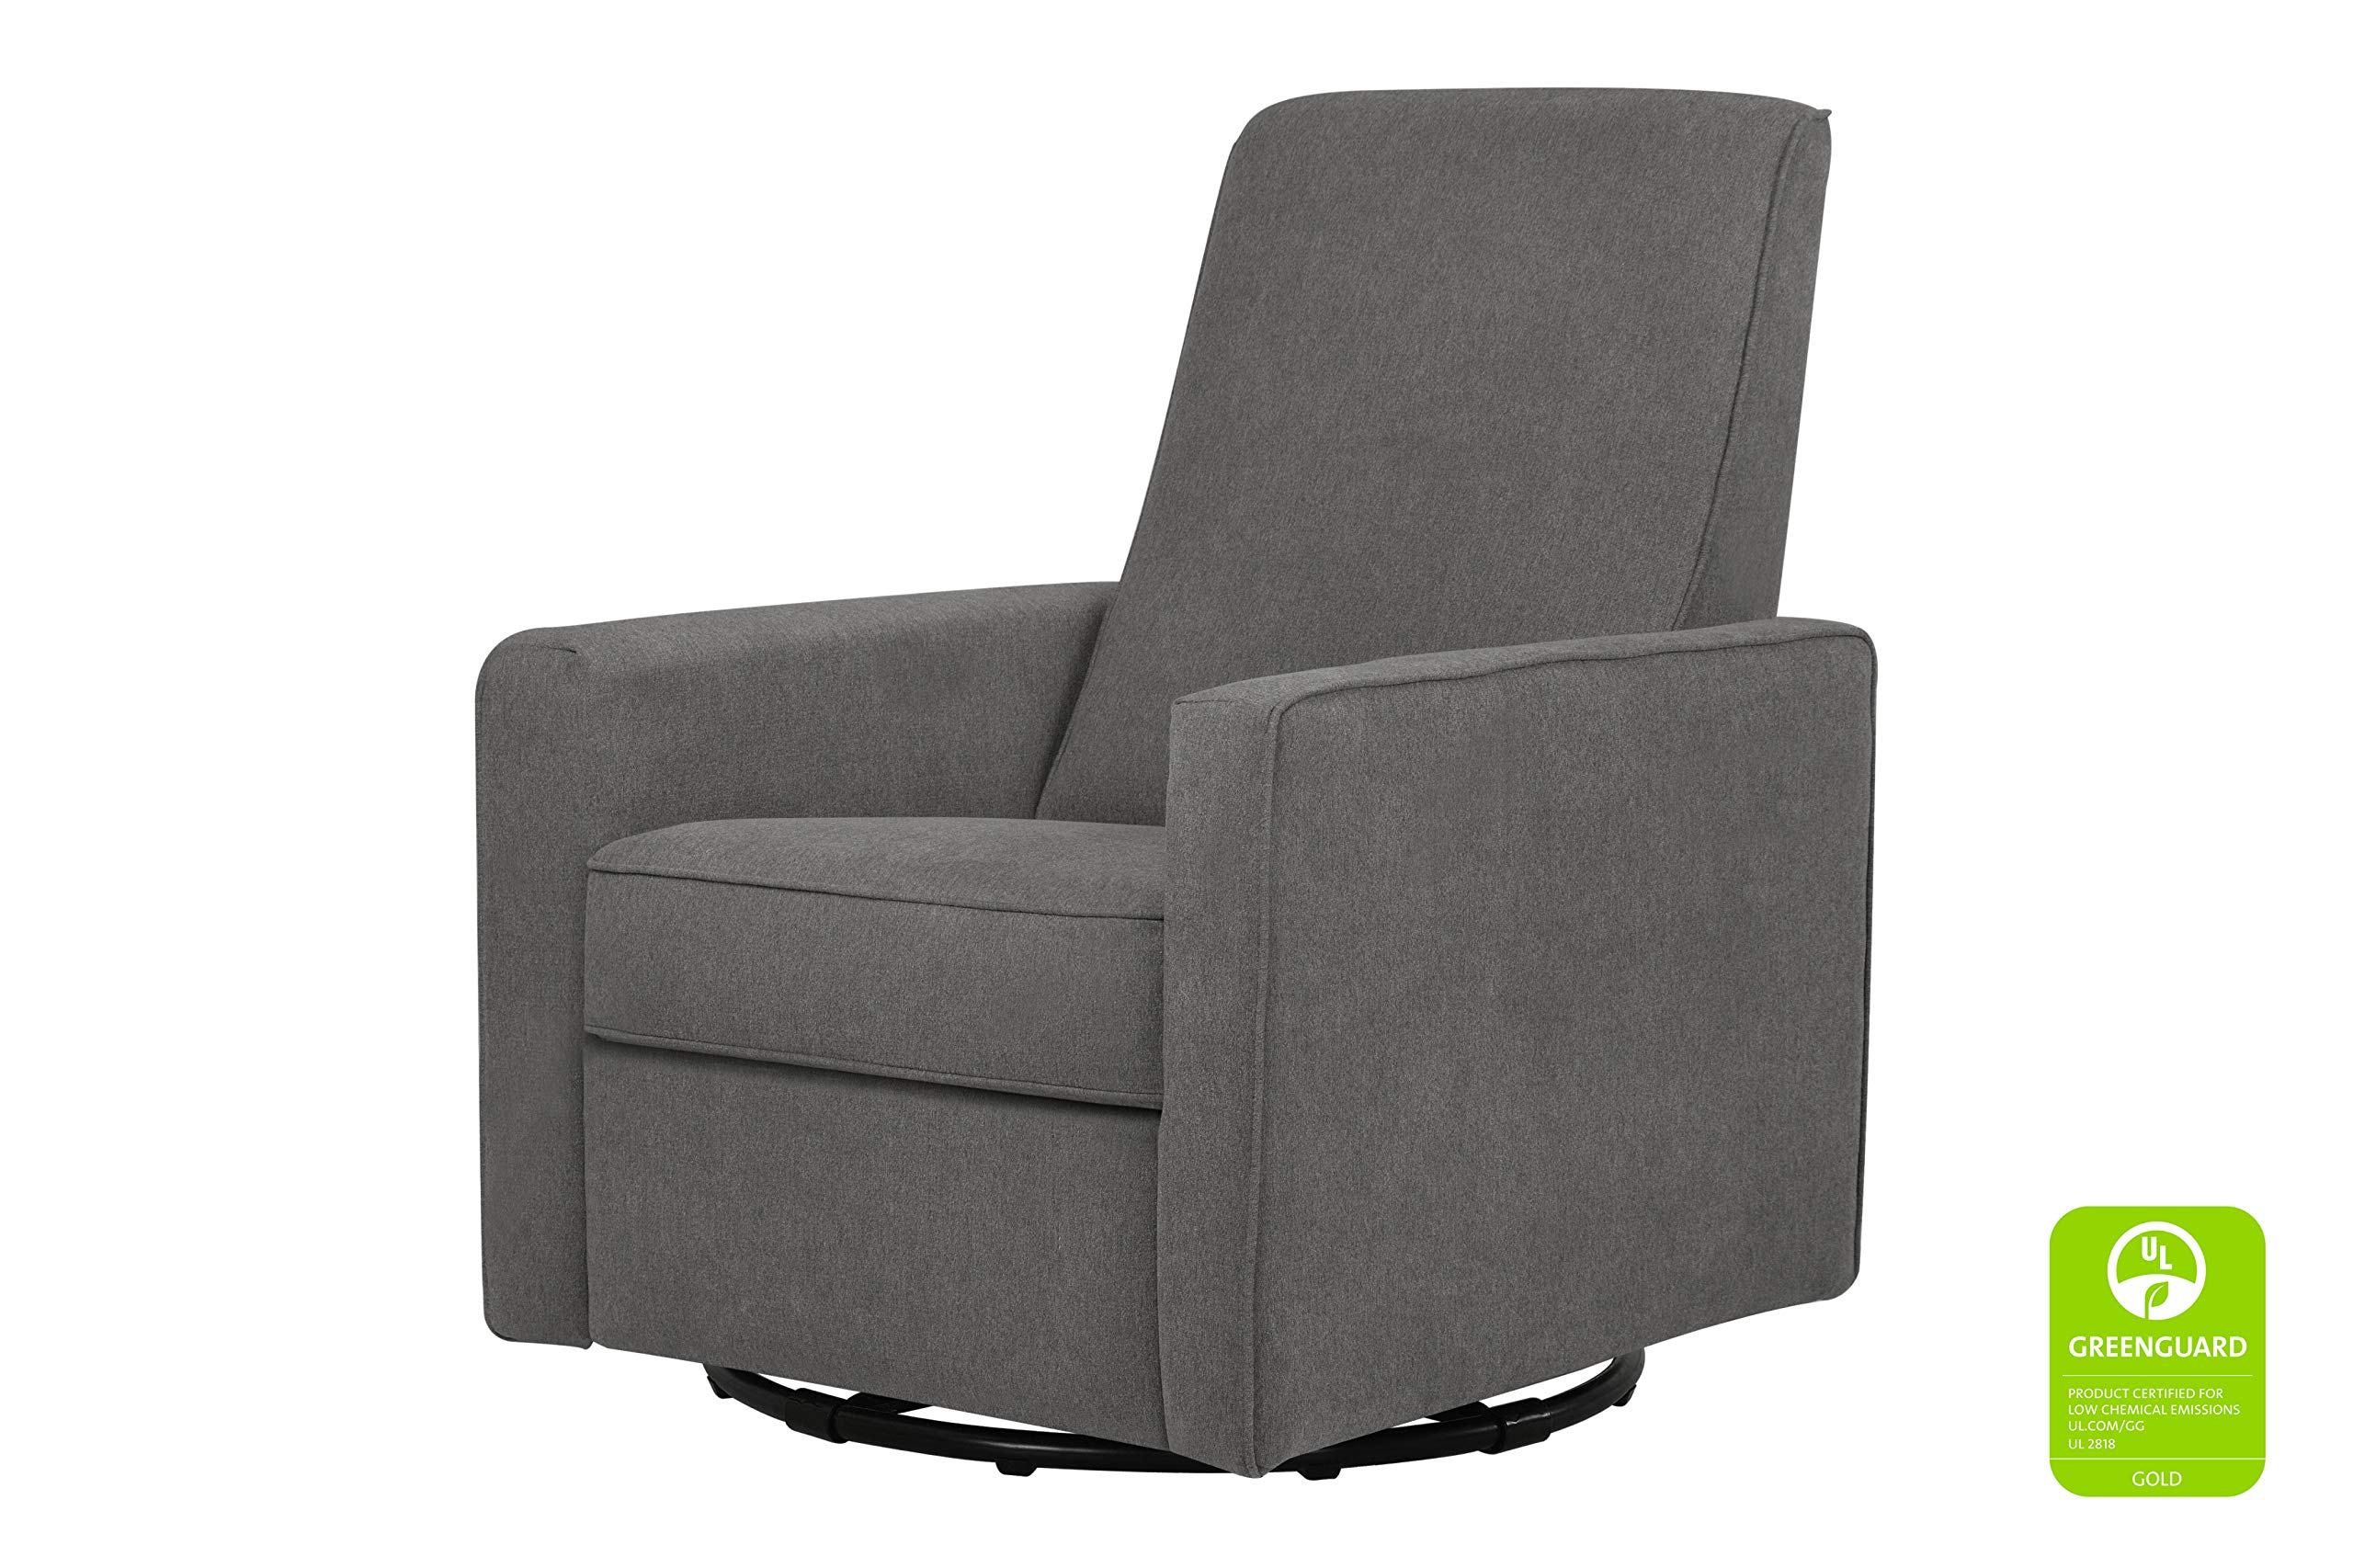 DaVinci Piper Upholstered Recliner and Swivel Glider, Dark Grey by DaVinci